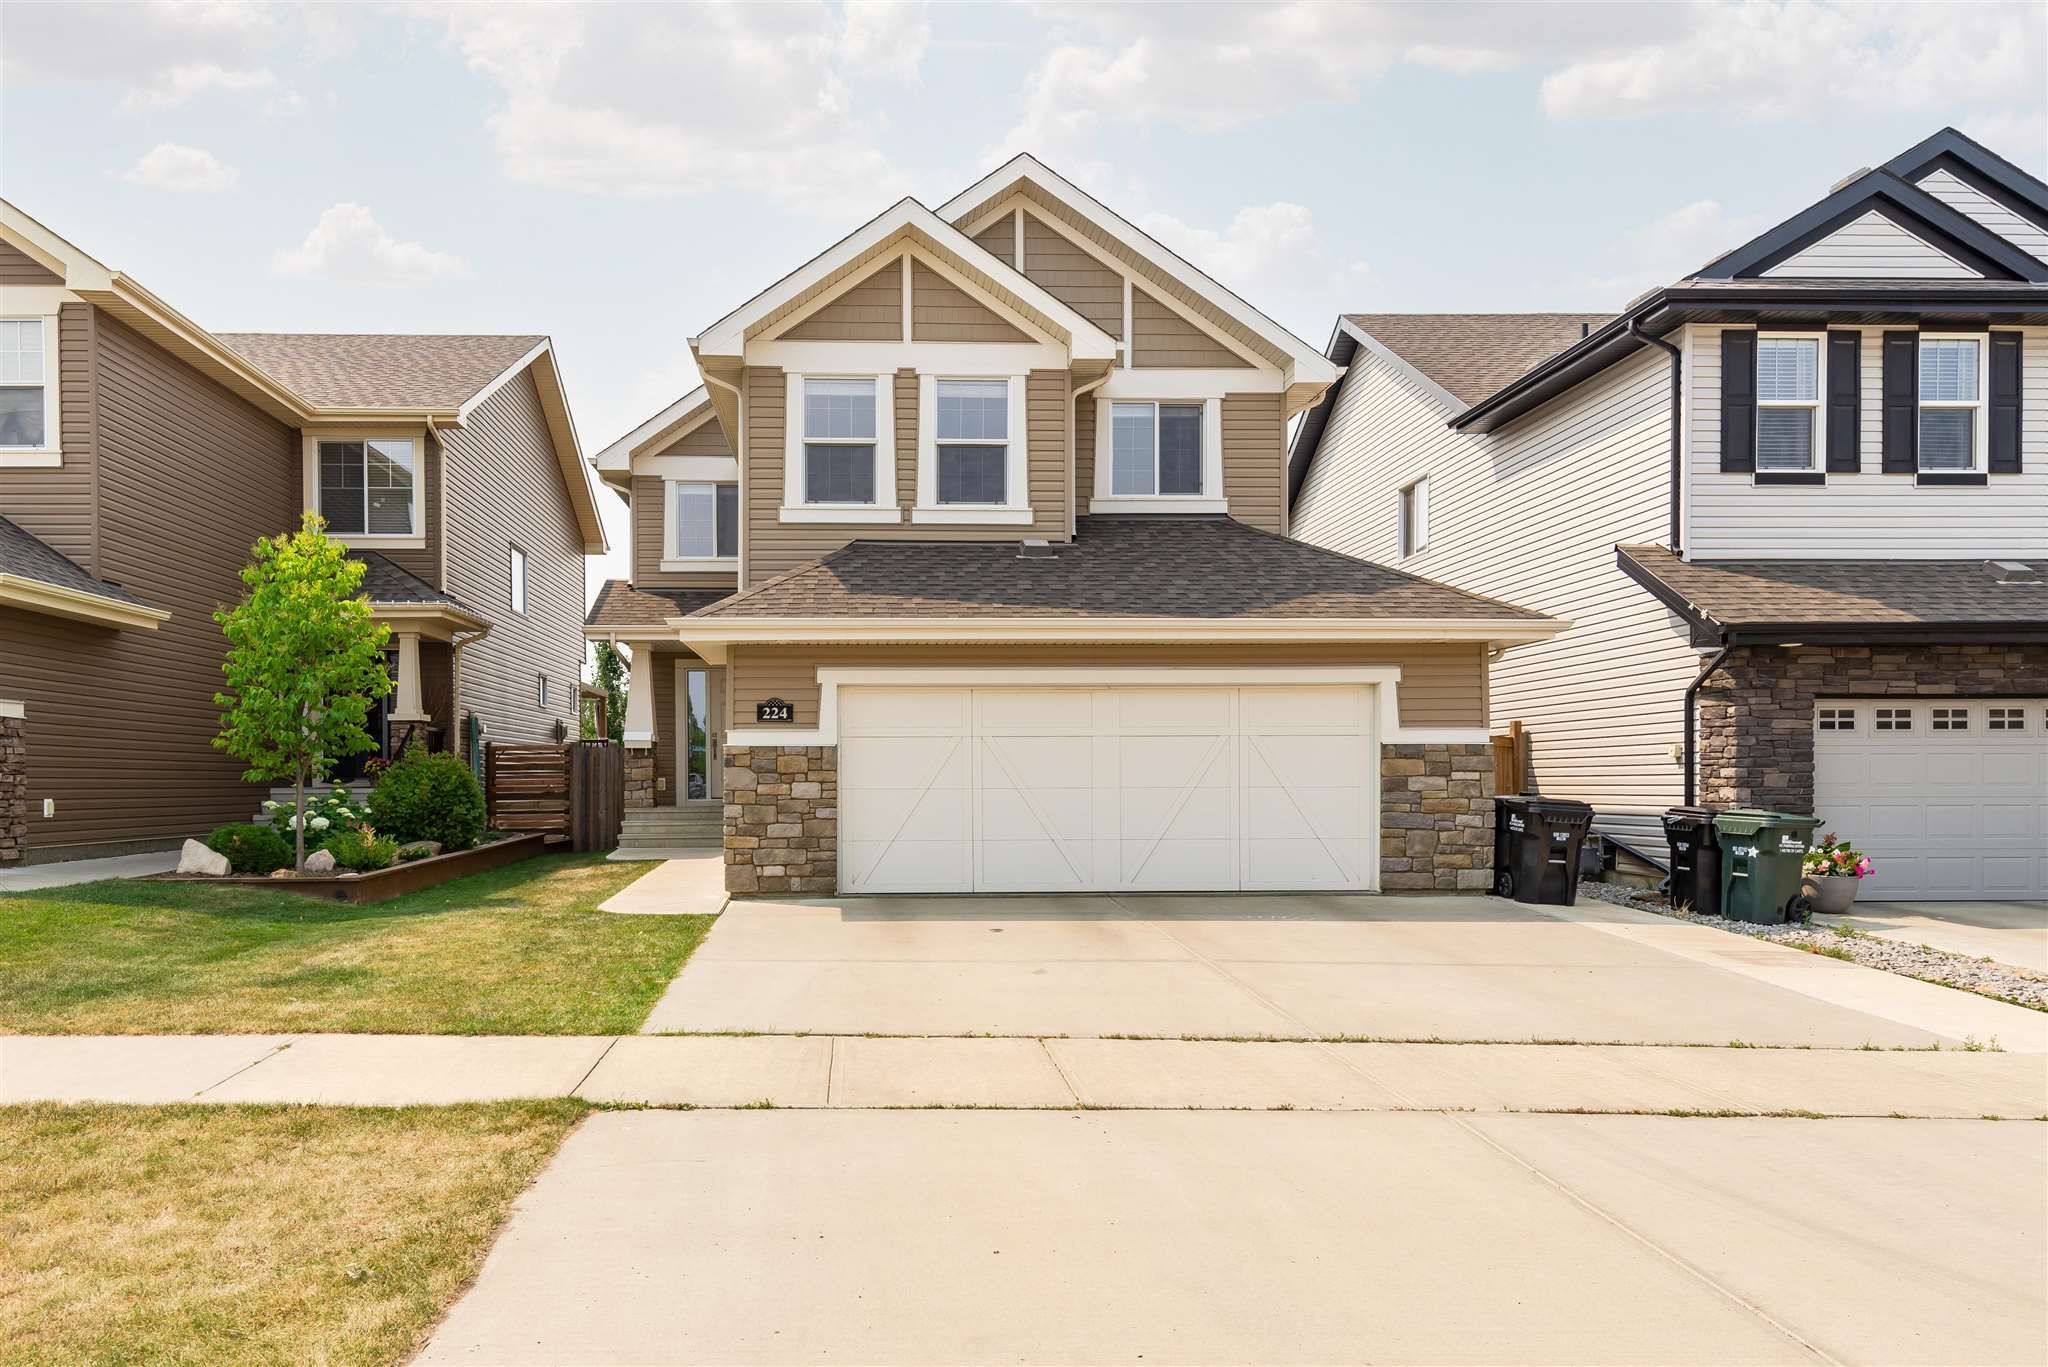 Main Photo: 224 CAMPBELL Point: Sherwood Park House for sale : MLS®# E4255219